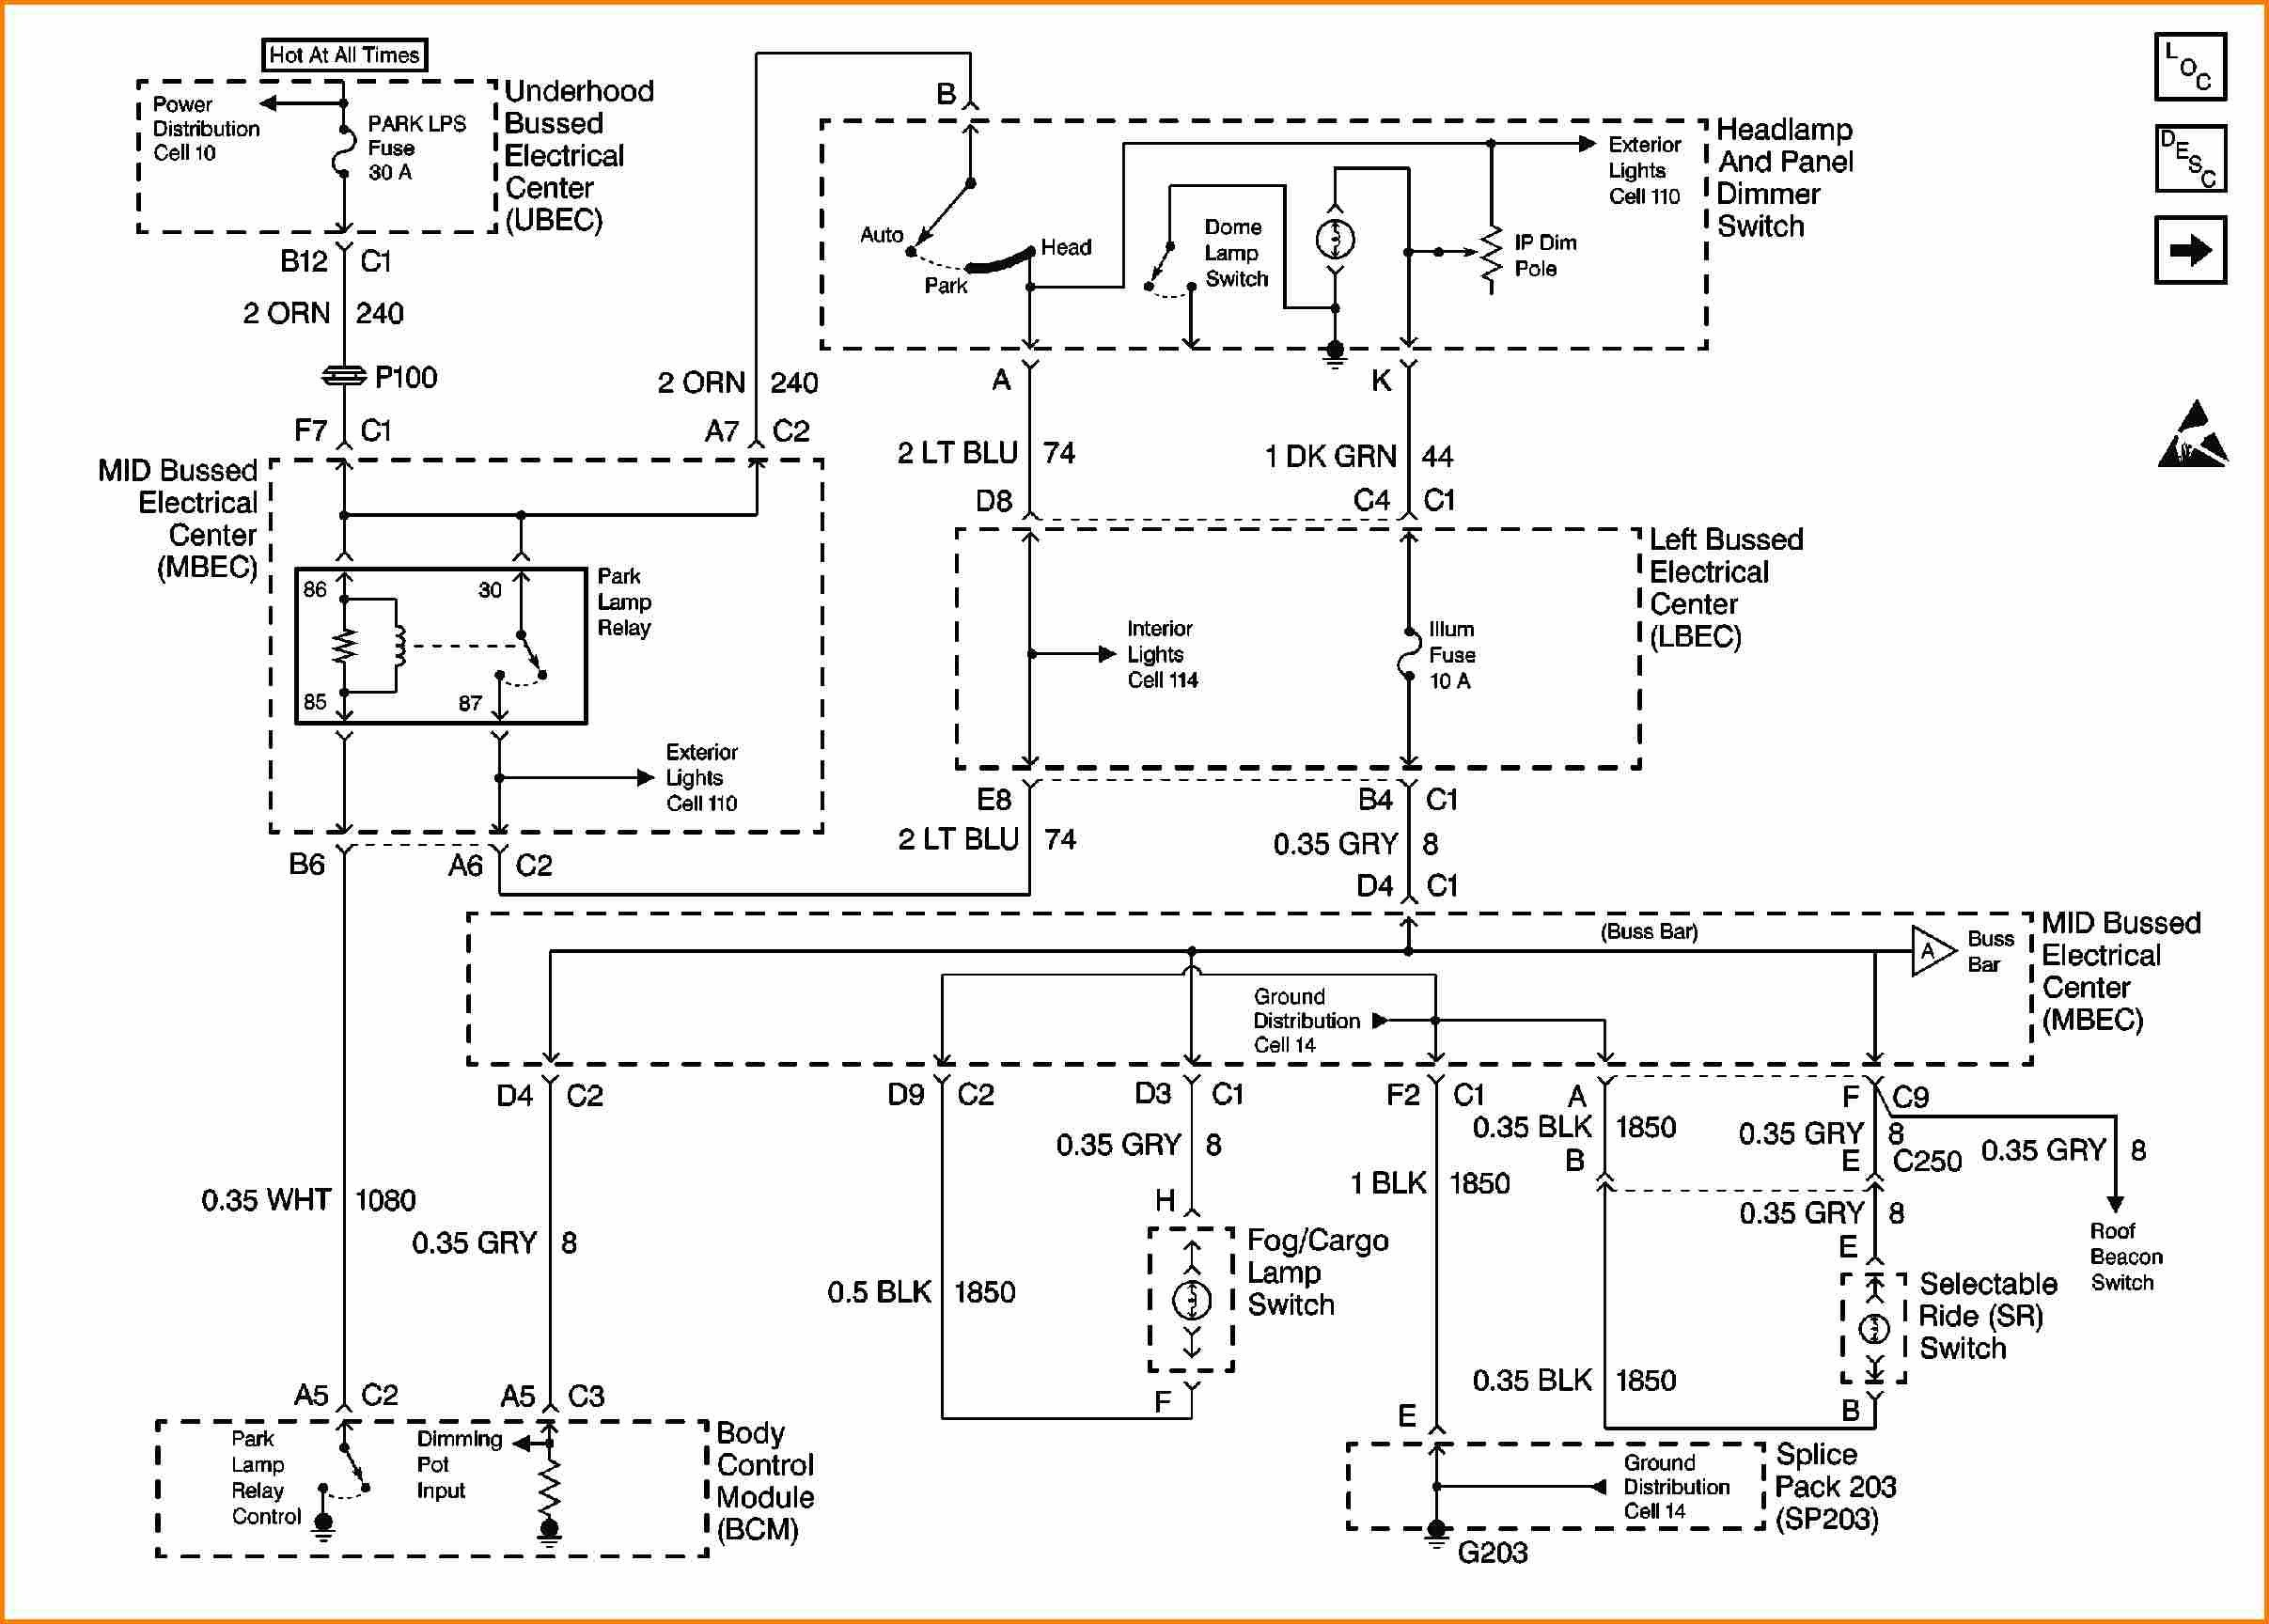 Chevy Cavalier Wiring Diagram - Center Wiring Diagram weight-external -  weight-external.iosonointersex.itiosonointersex.it